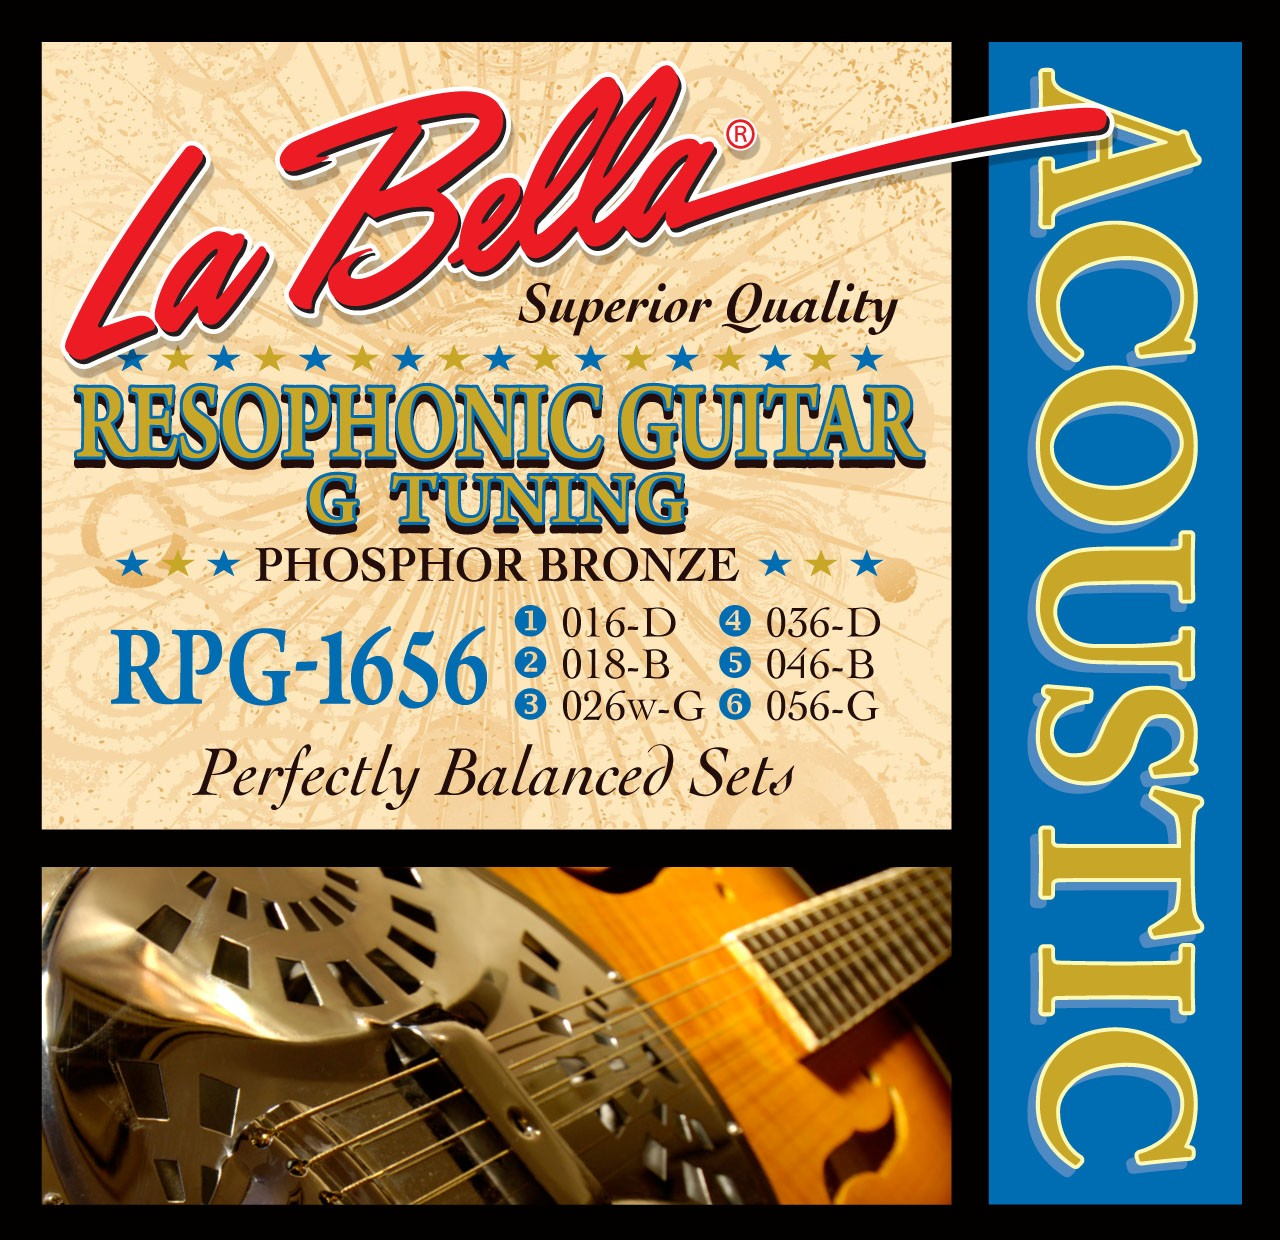 La Bella Resophonic Guitar Strings - Phosphor Bronze